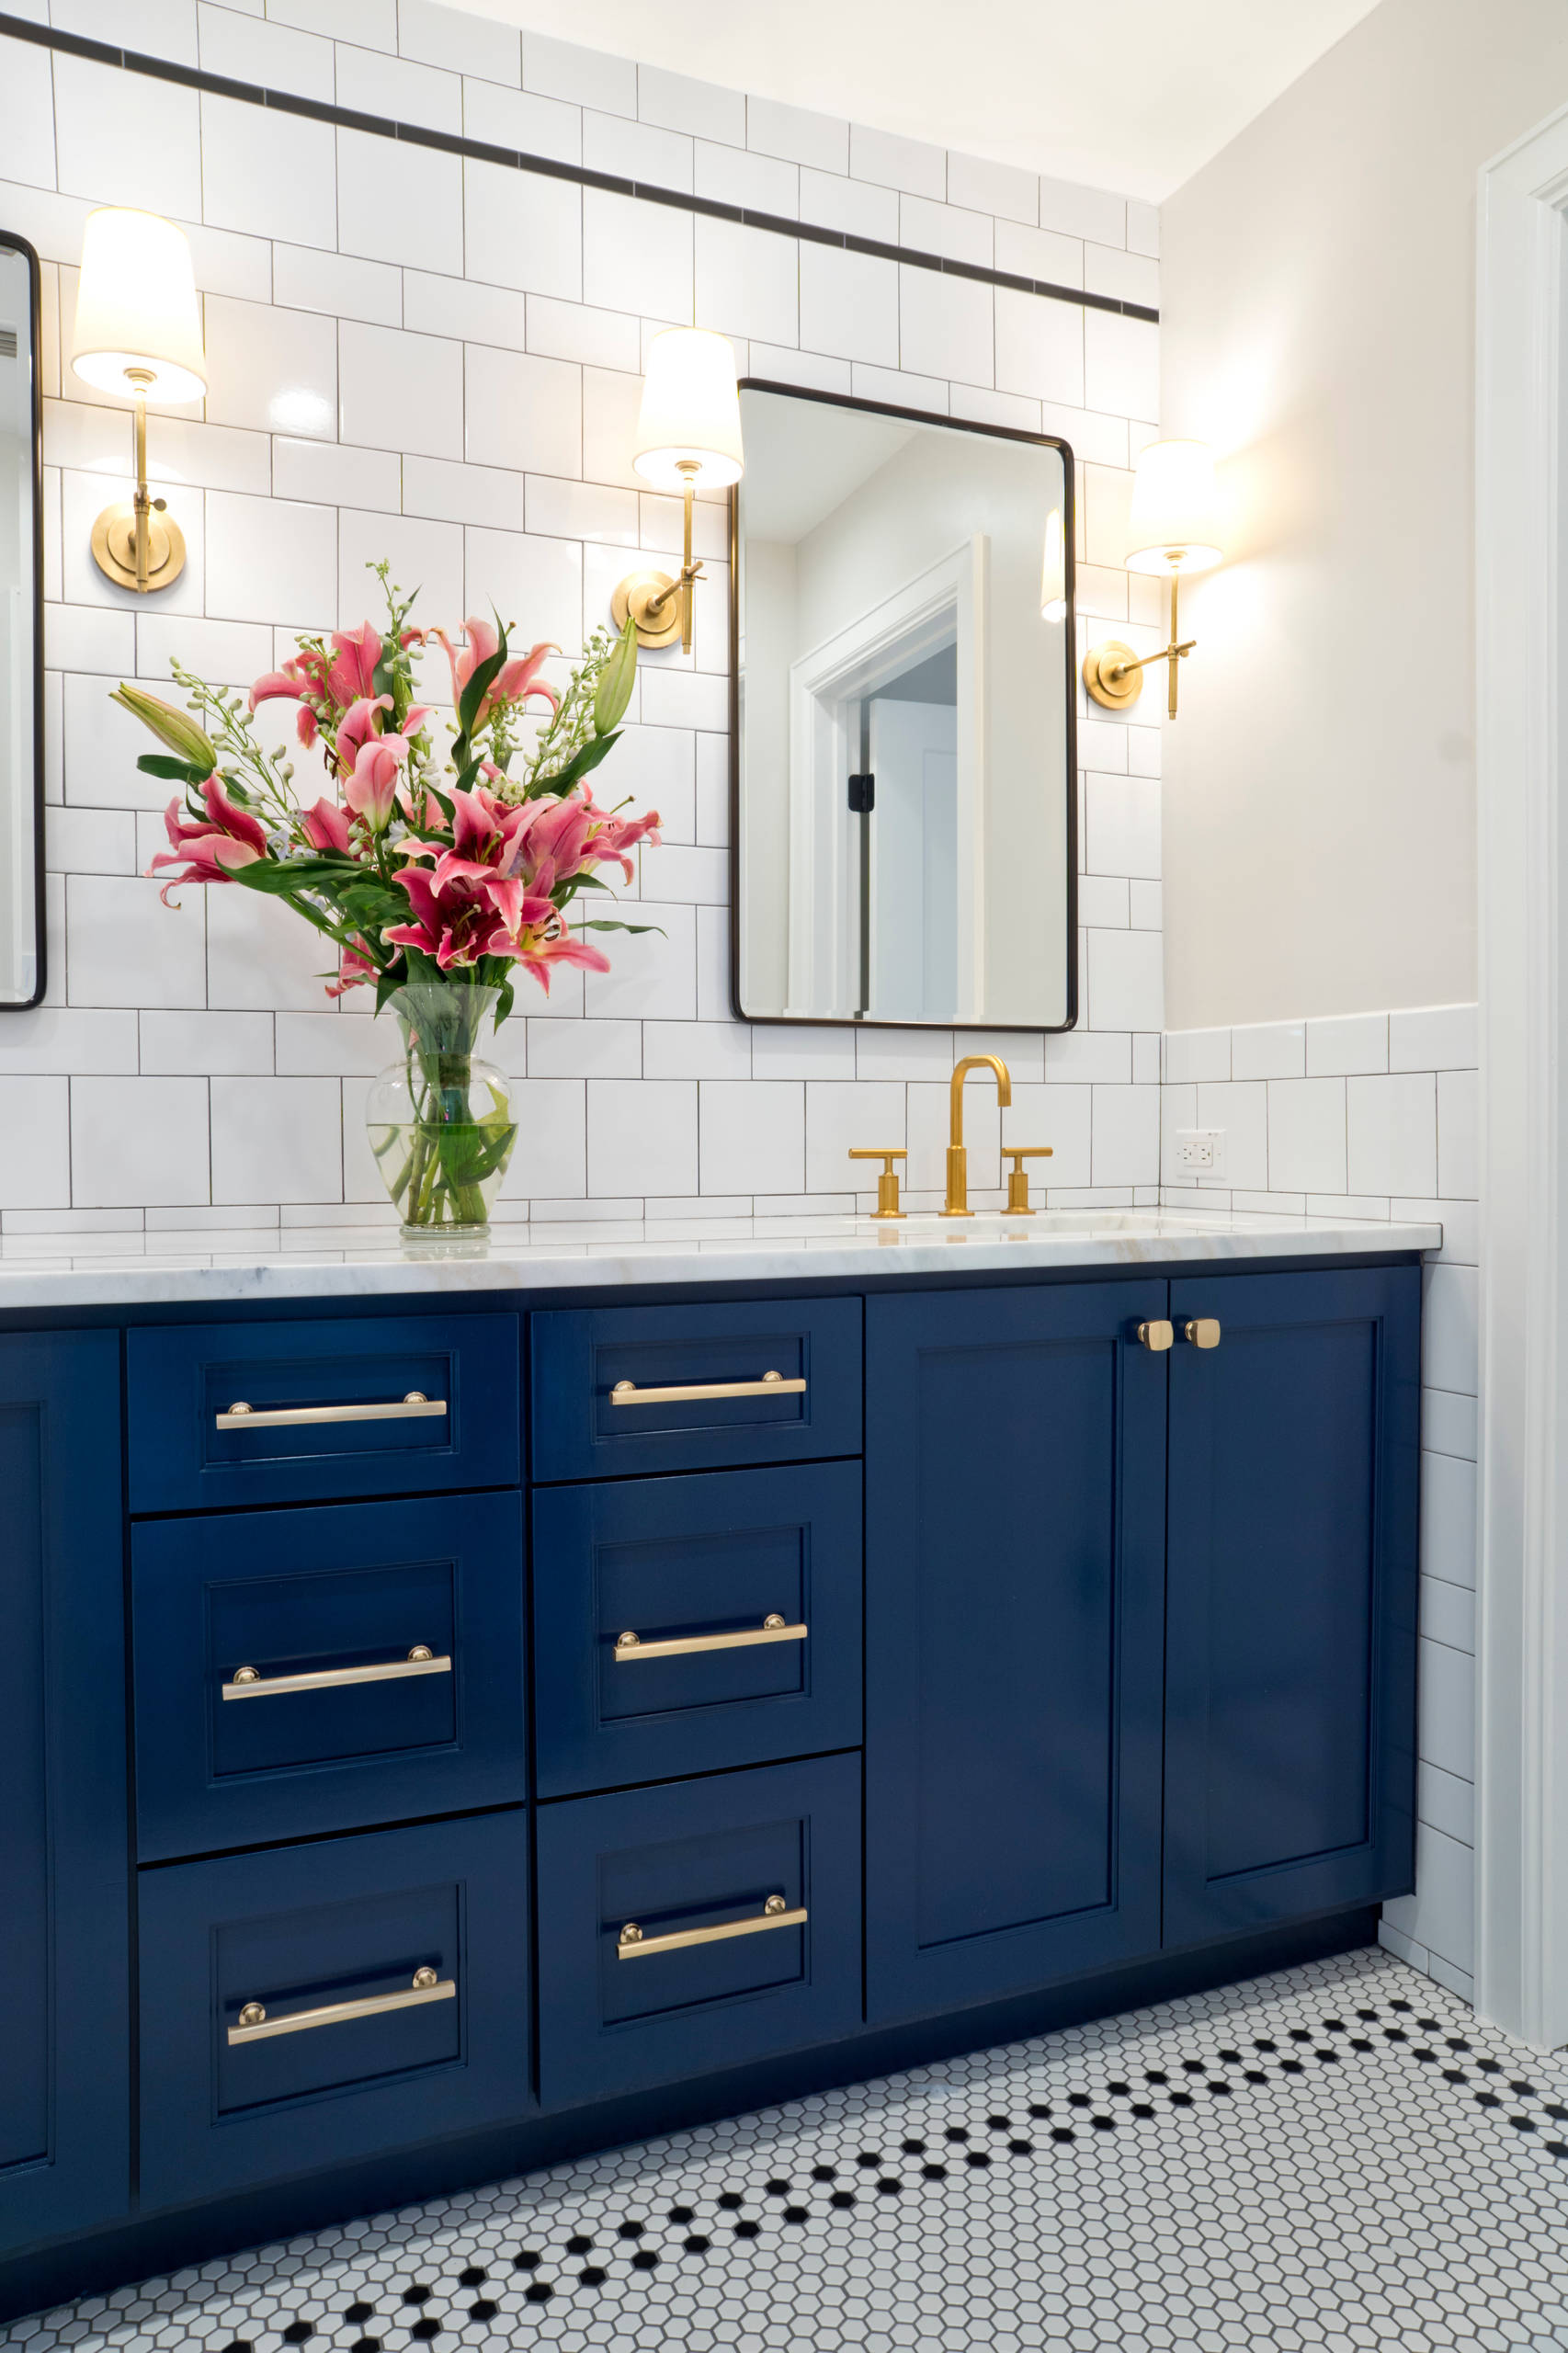 999 Beautiful Blue Bathroom Pictures Ideas October 2020 Houzz